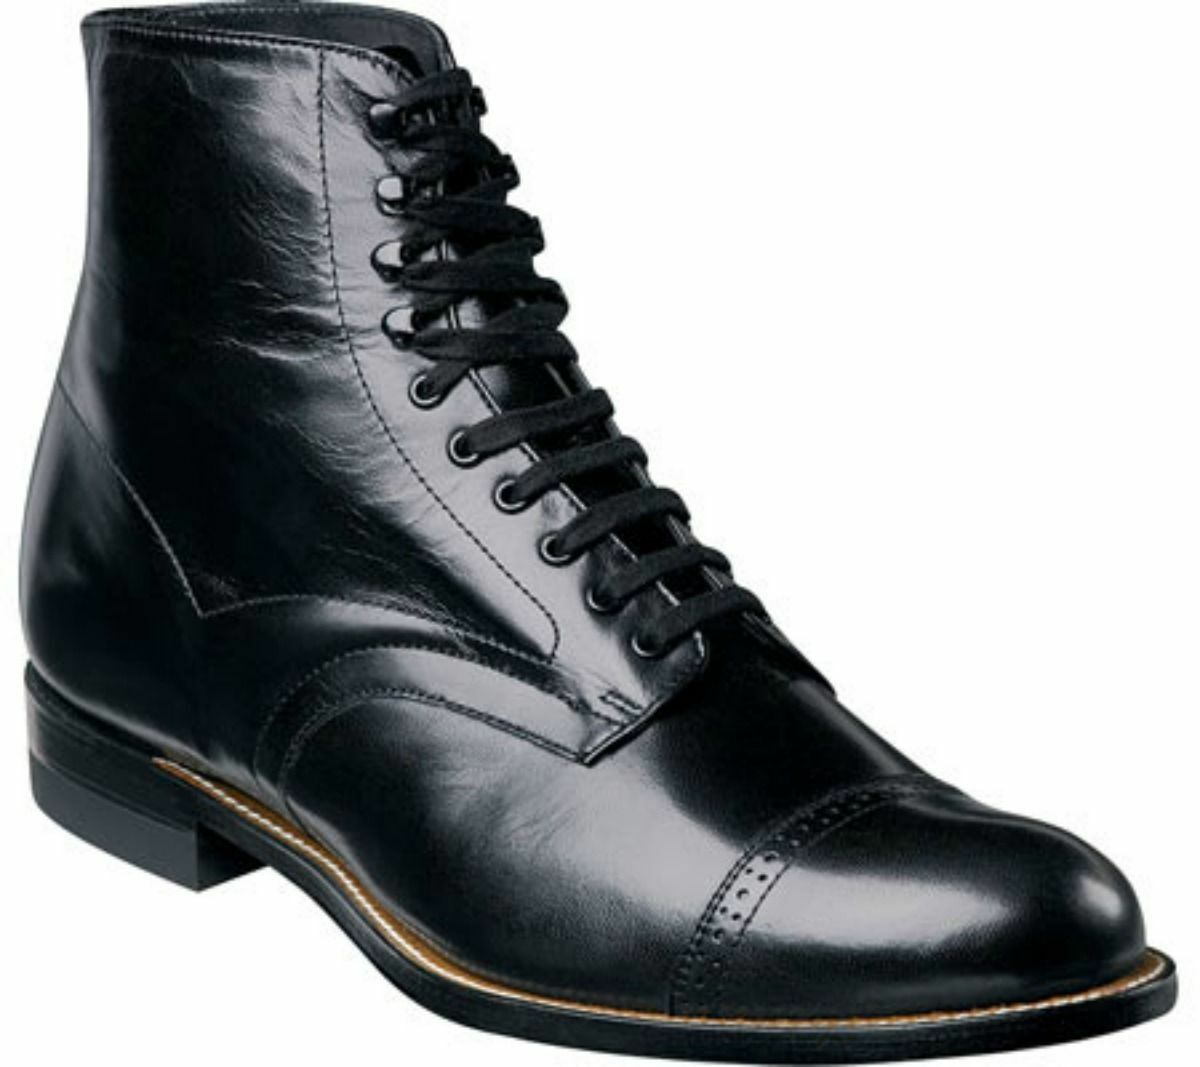 Stacy Adams Mens Madison Ankle Boot Biscuit Wide Cap Toe Black  00015-01 EE